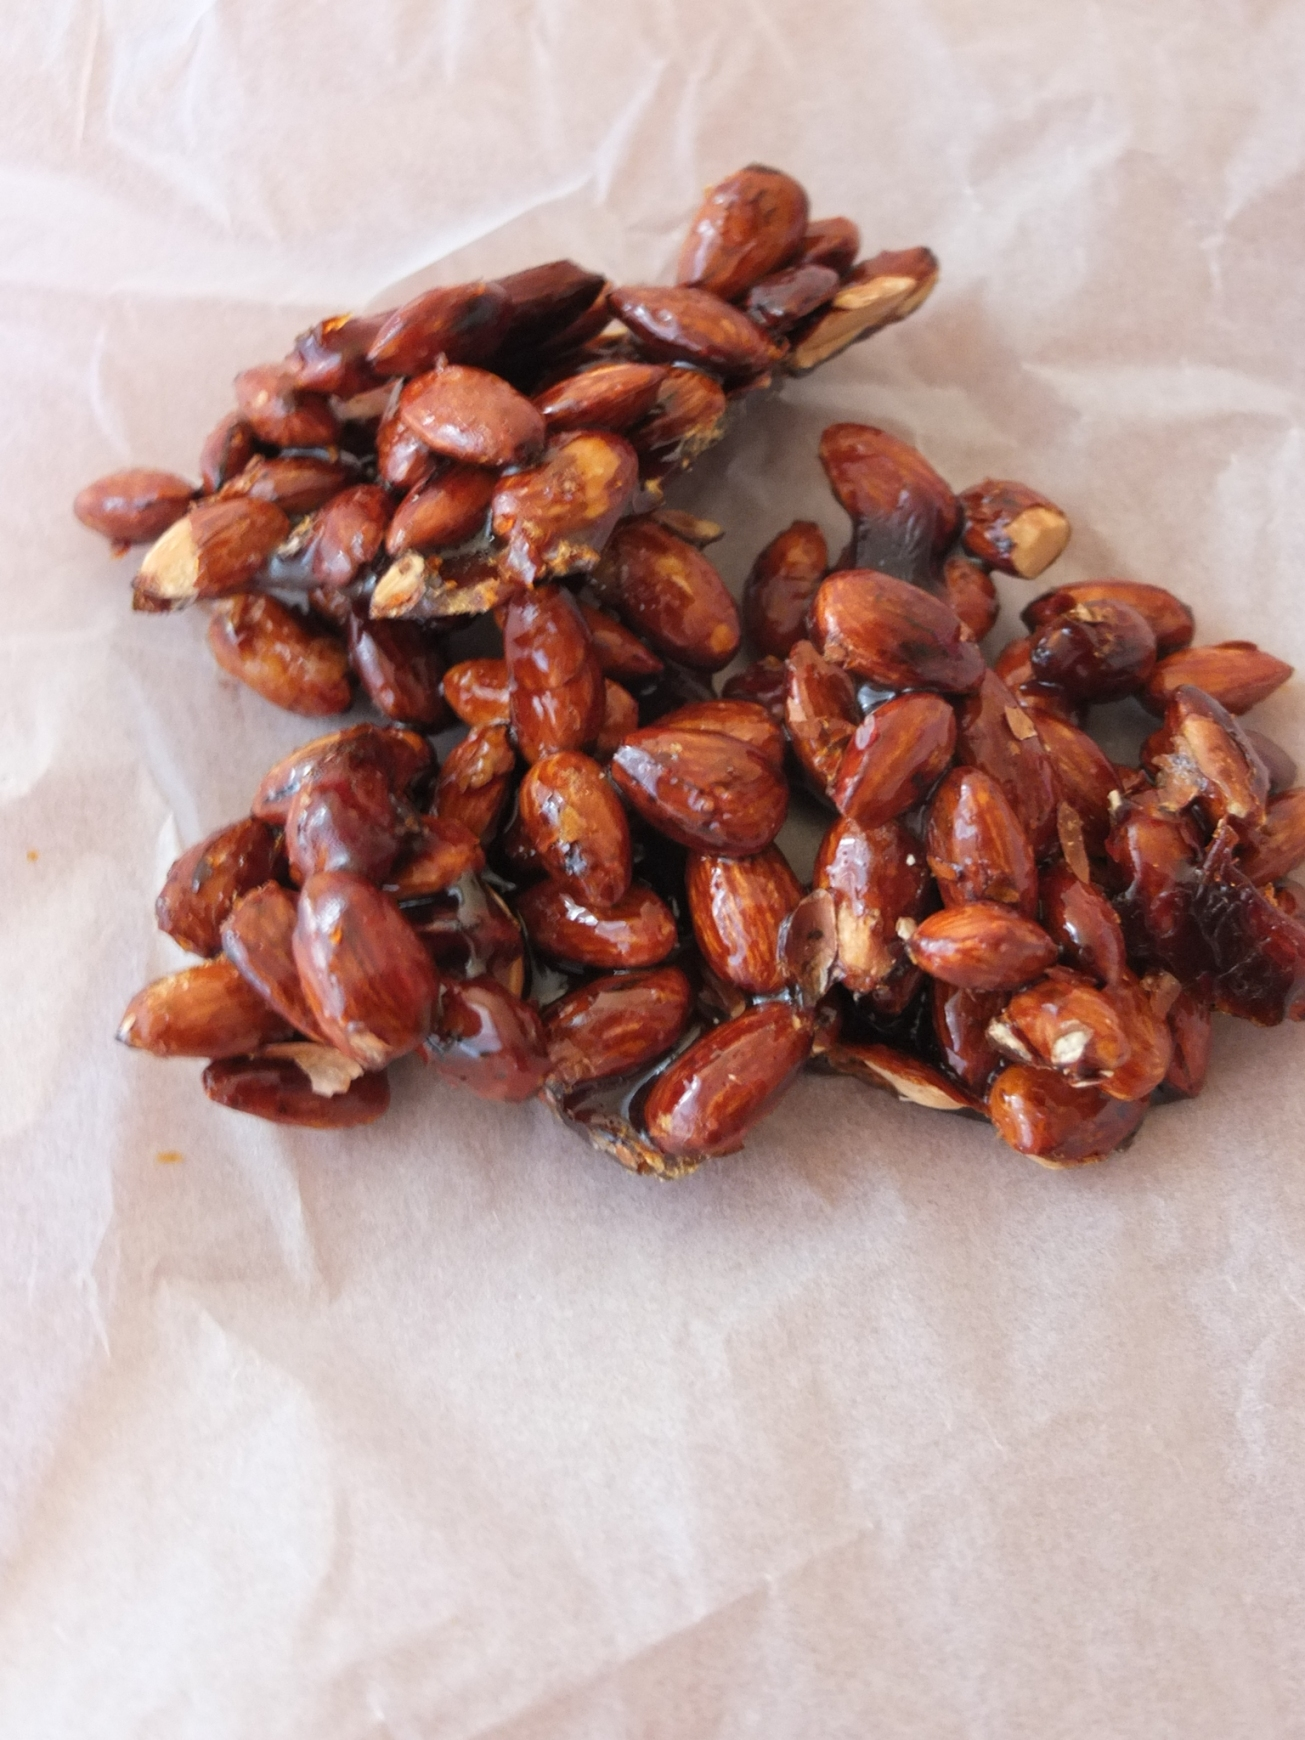 Homemade pralines